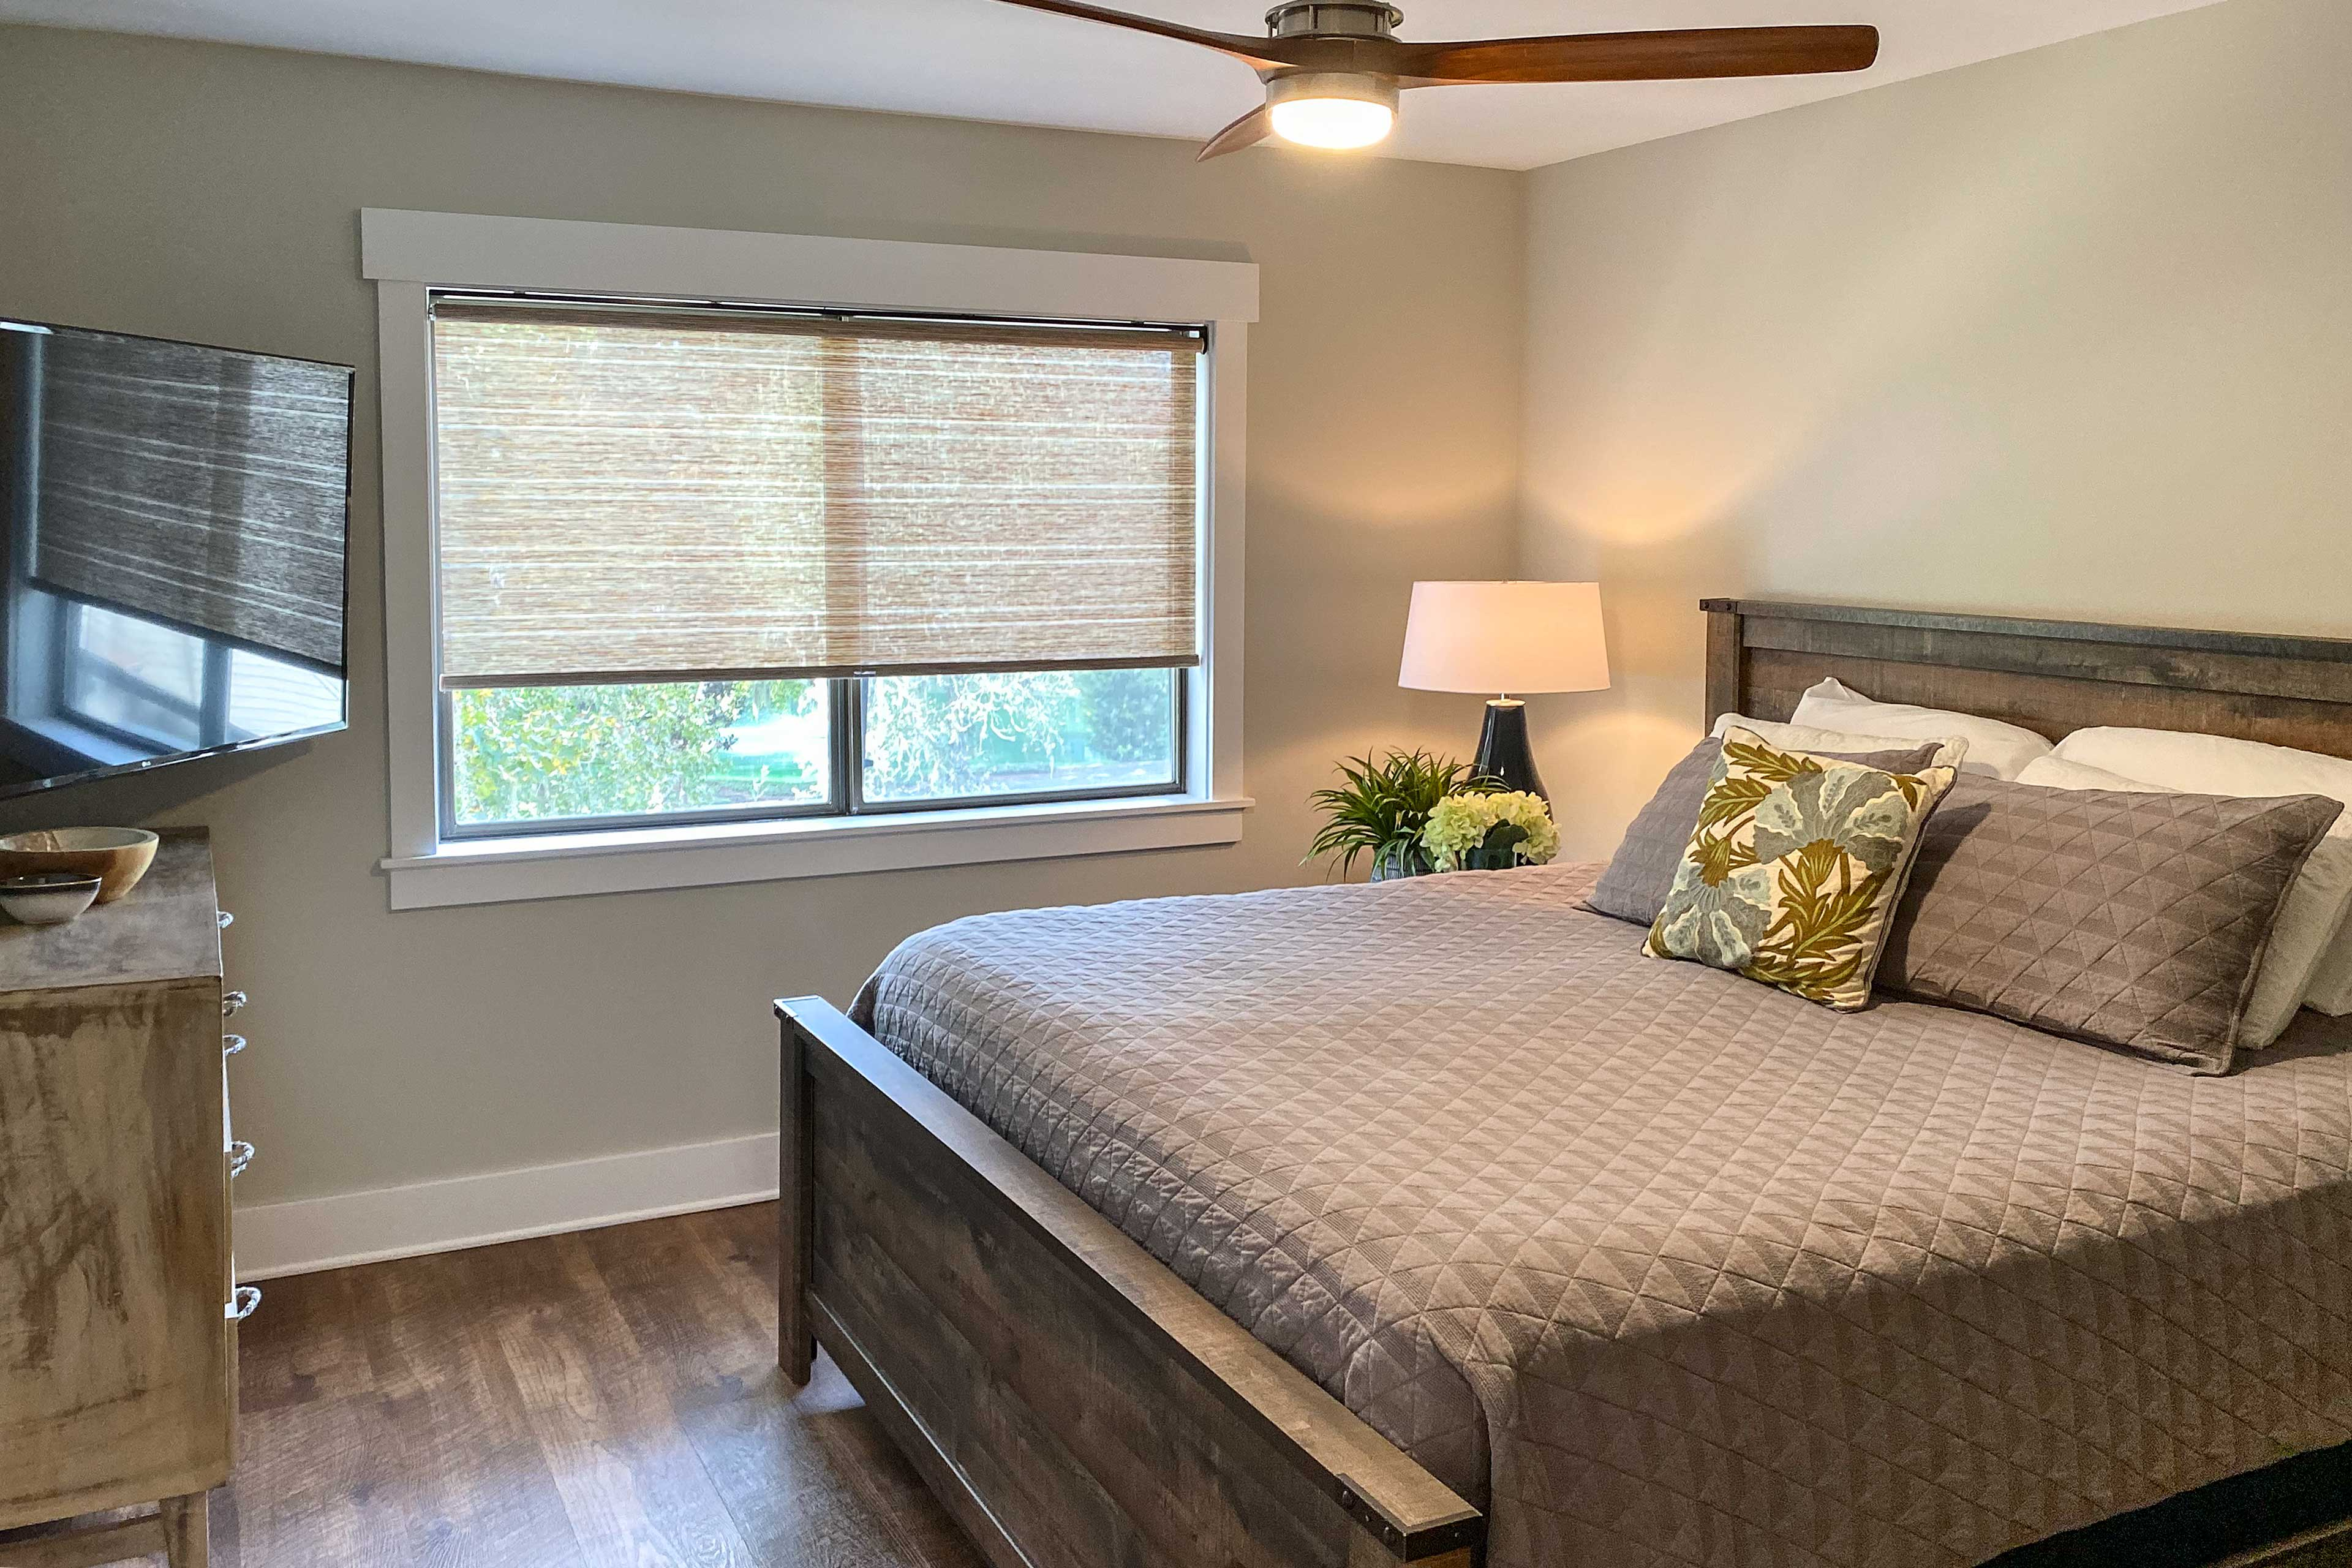 The bedroom is equipped with a flat-screen Smart TV.